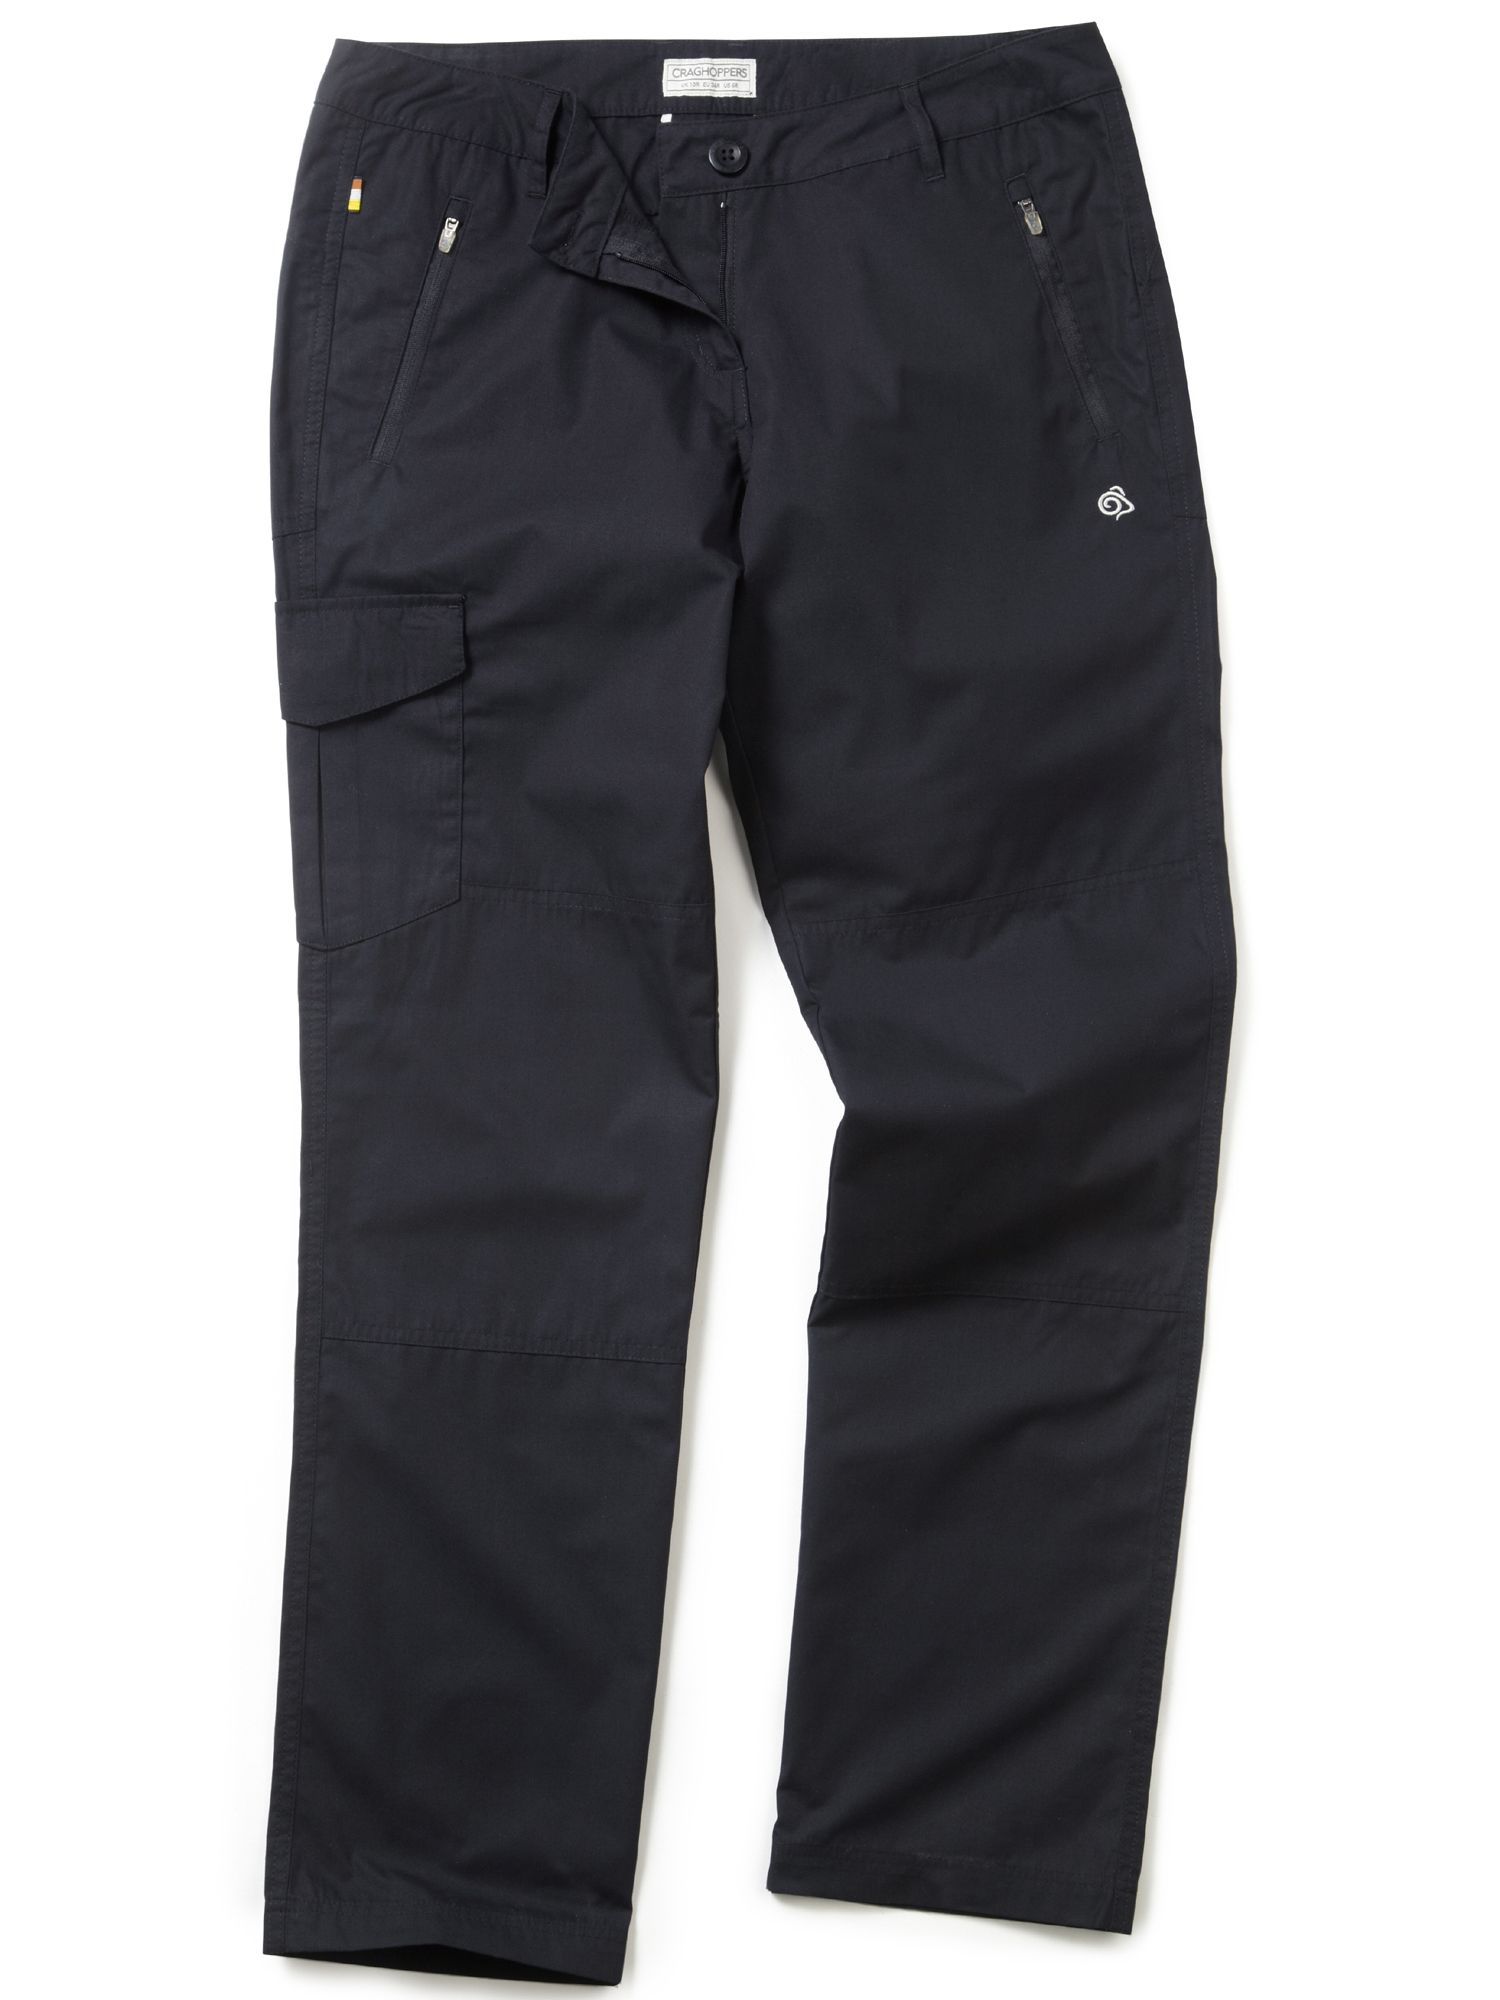 Craghoppers Traverse Trousers, Black